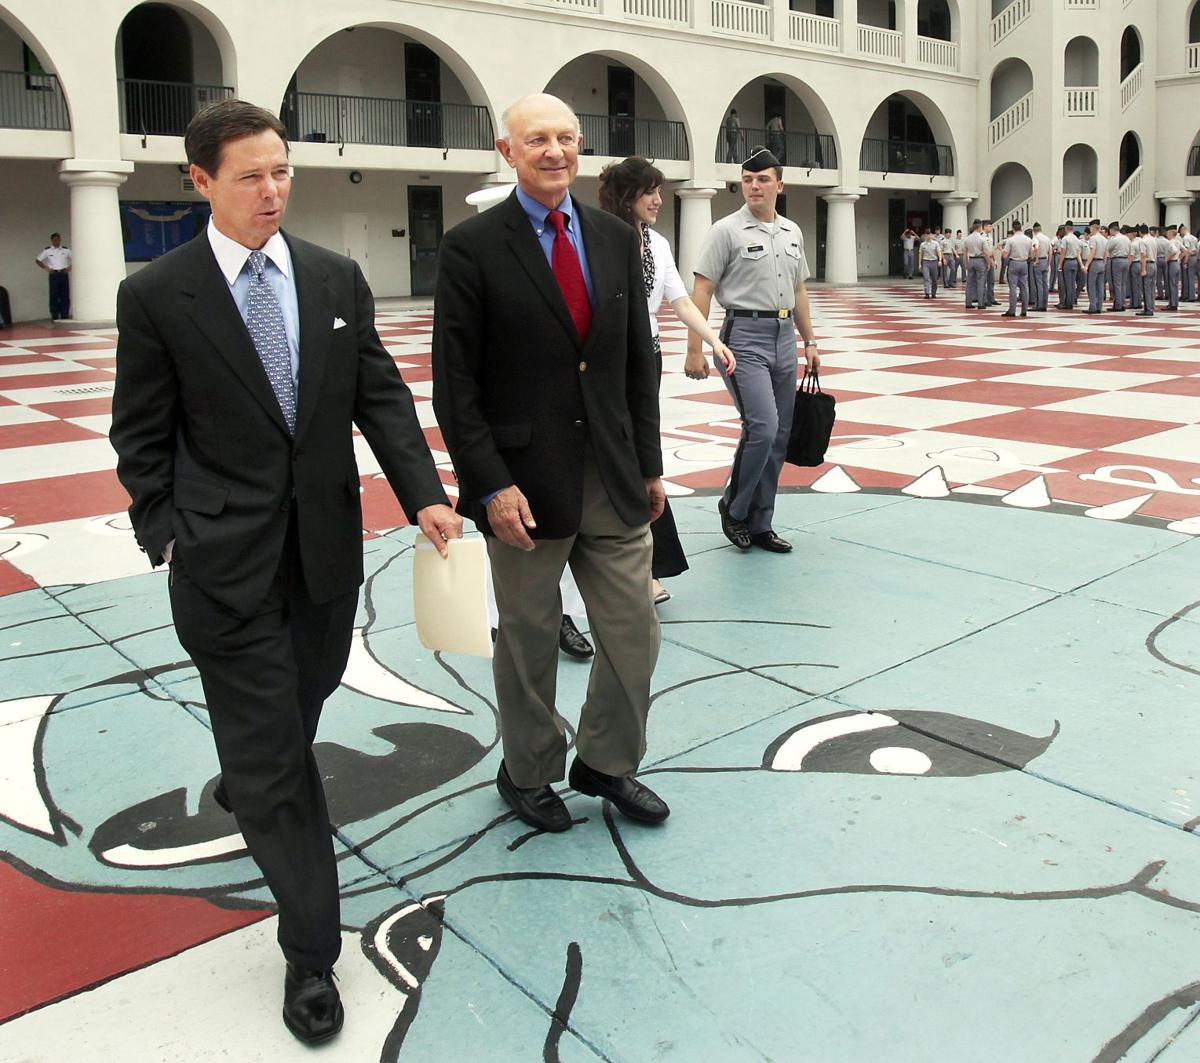 Conservatism thriving, say panelists at Citadel